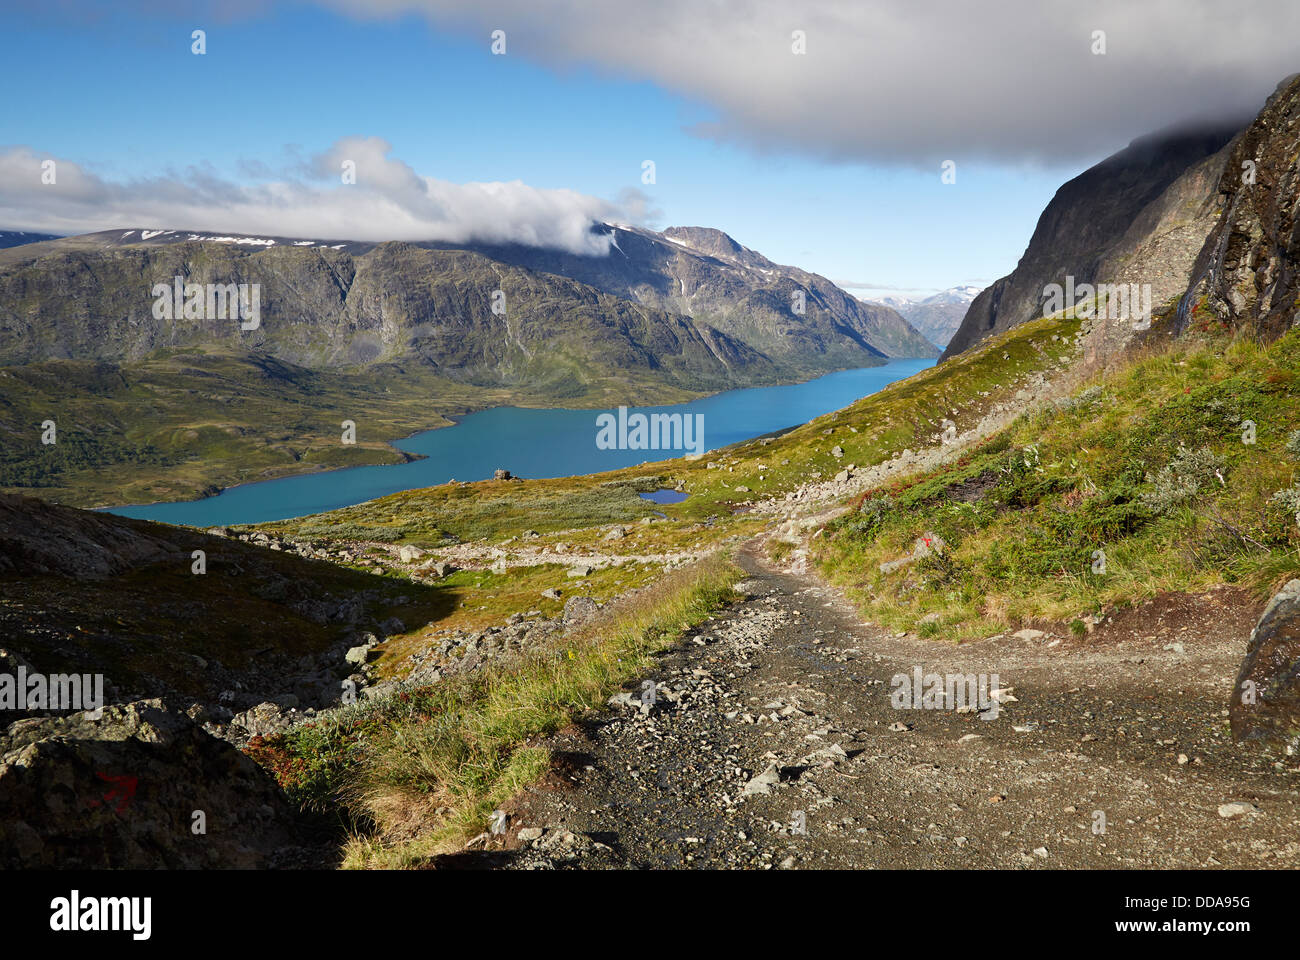 View of Lake Gjende from the ascent to the Besseggen Ridge walk Jotunheimen National Park Norway - Stock Image